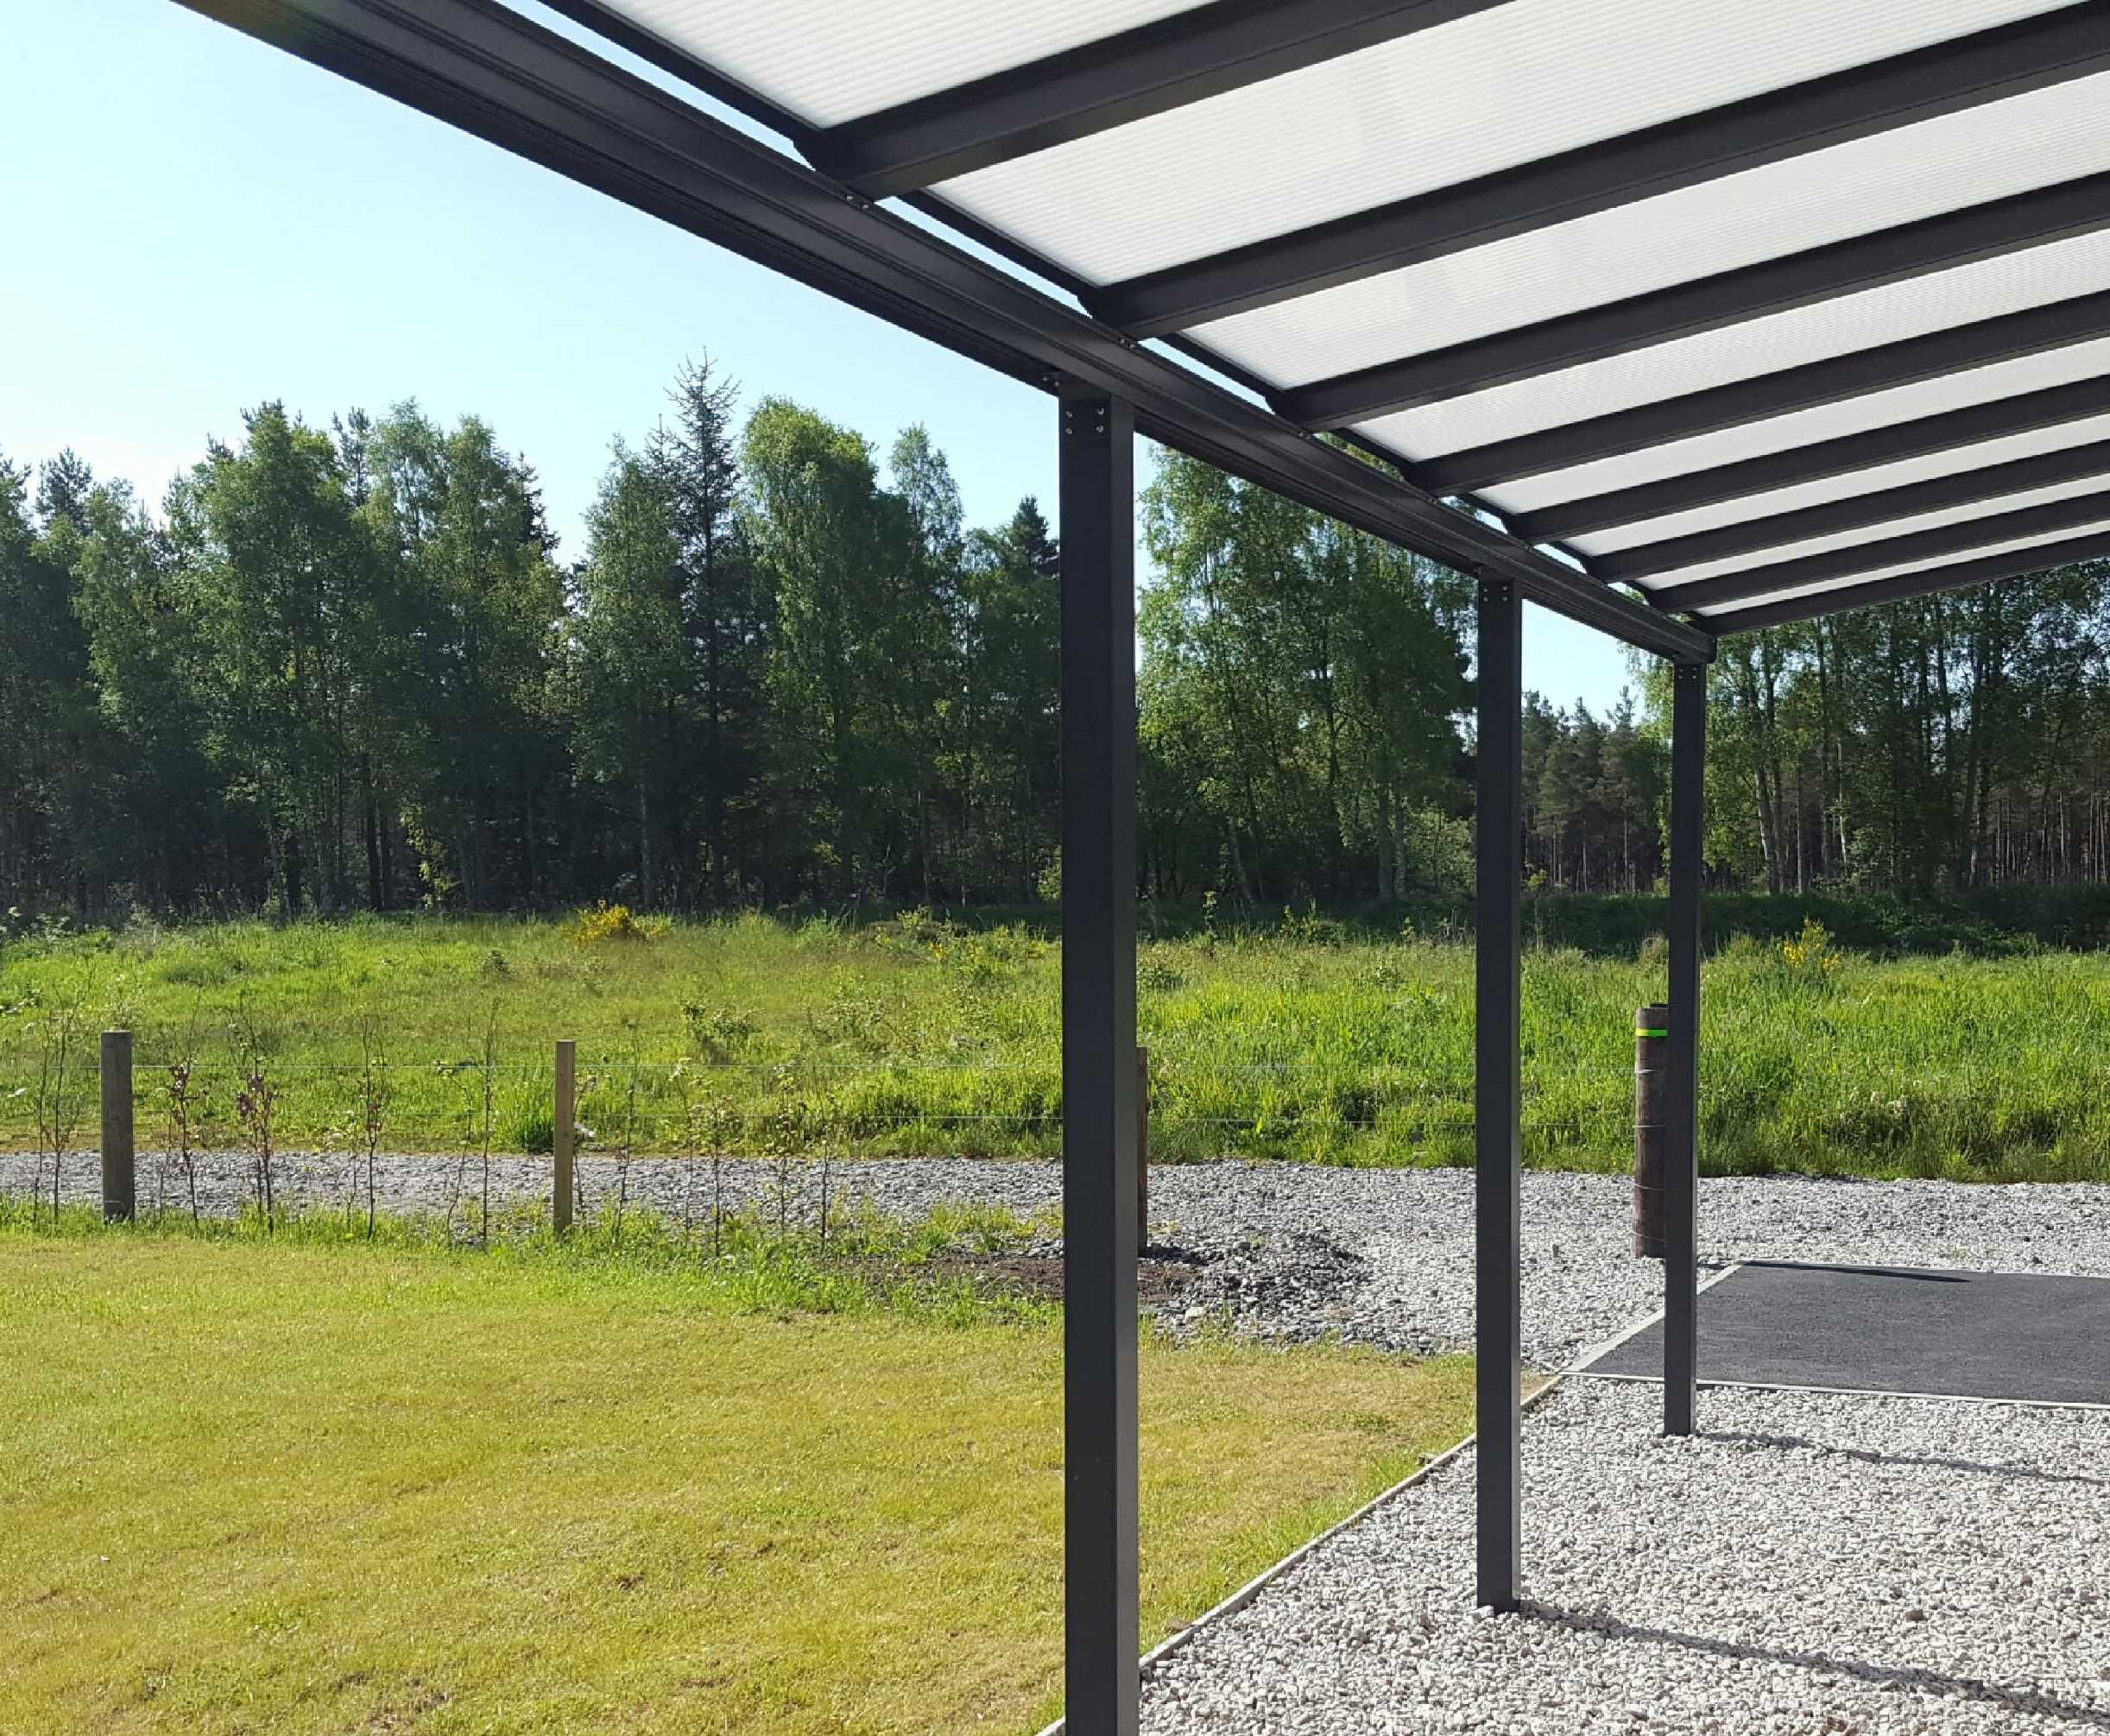 Omega Smart Lean-To Canopy, Anthracite Grey, UNGLAZED for 6mm Glazing - 4.9m (W) x 1.5m (P), (3) Supporting Posts